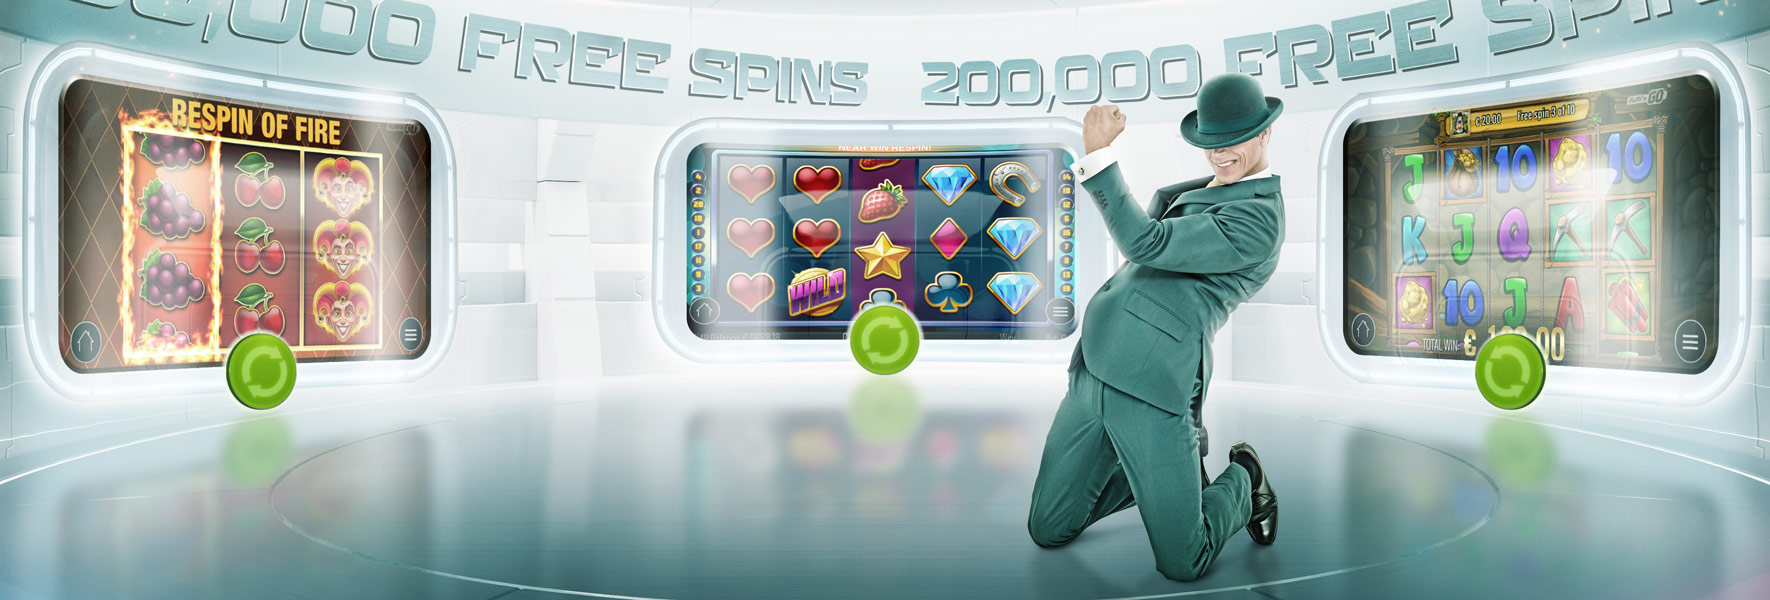 200000-Free-Spins-Festival